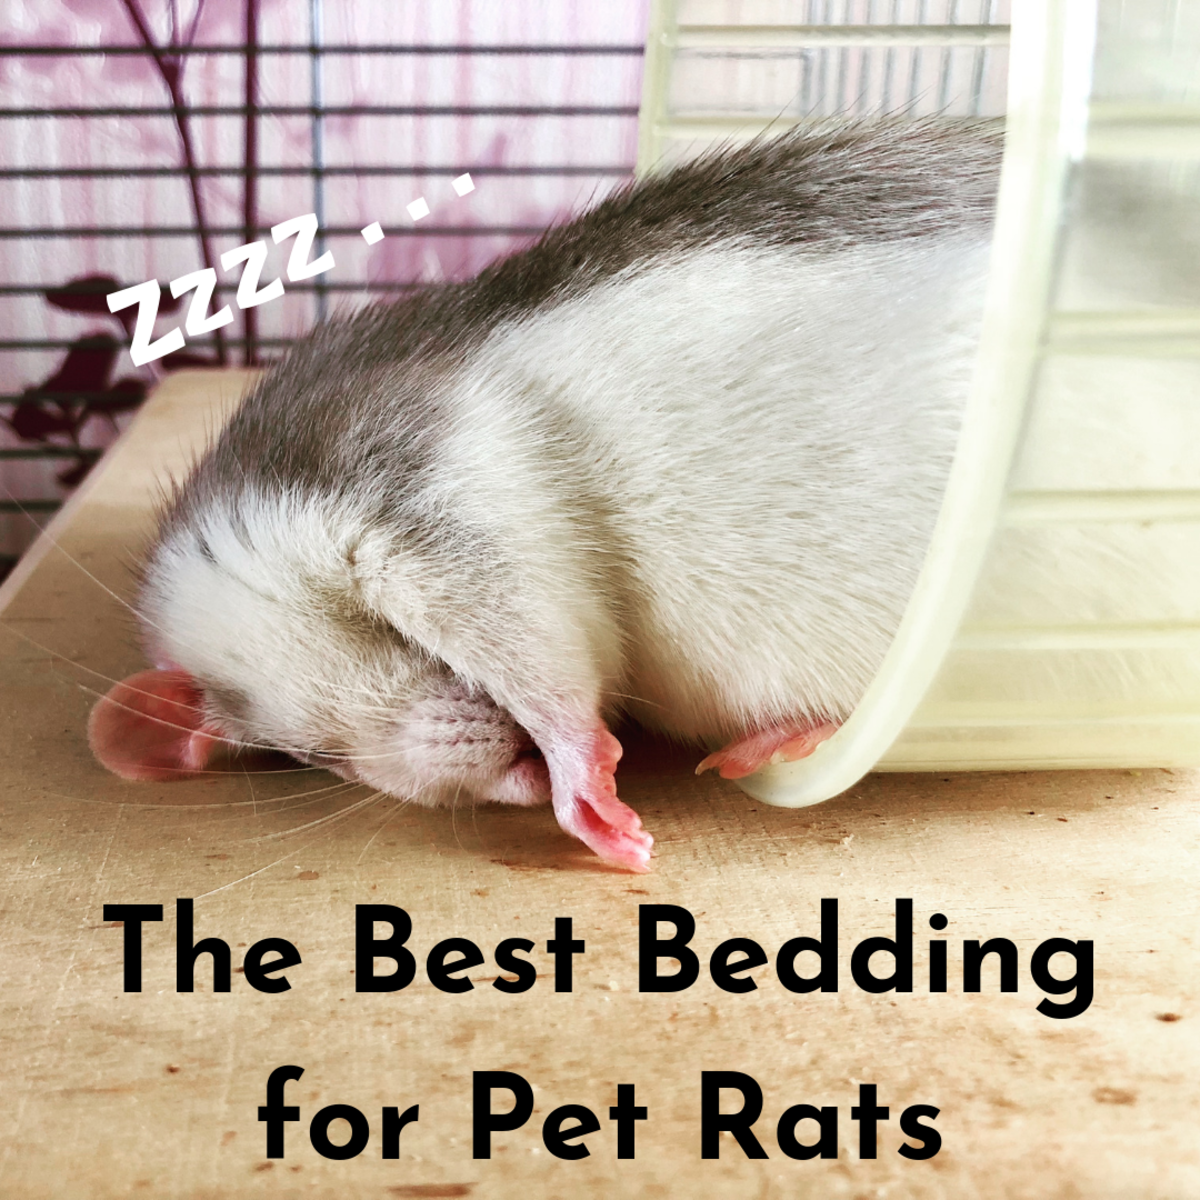 What Is the Best Bedding for Pet Rats?